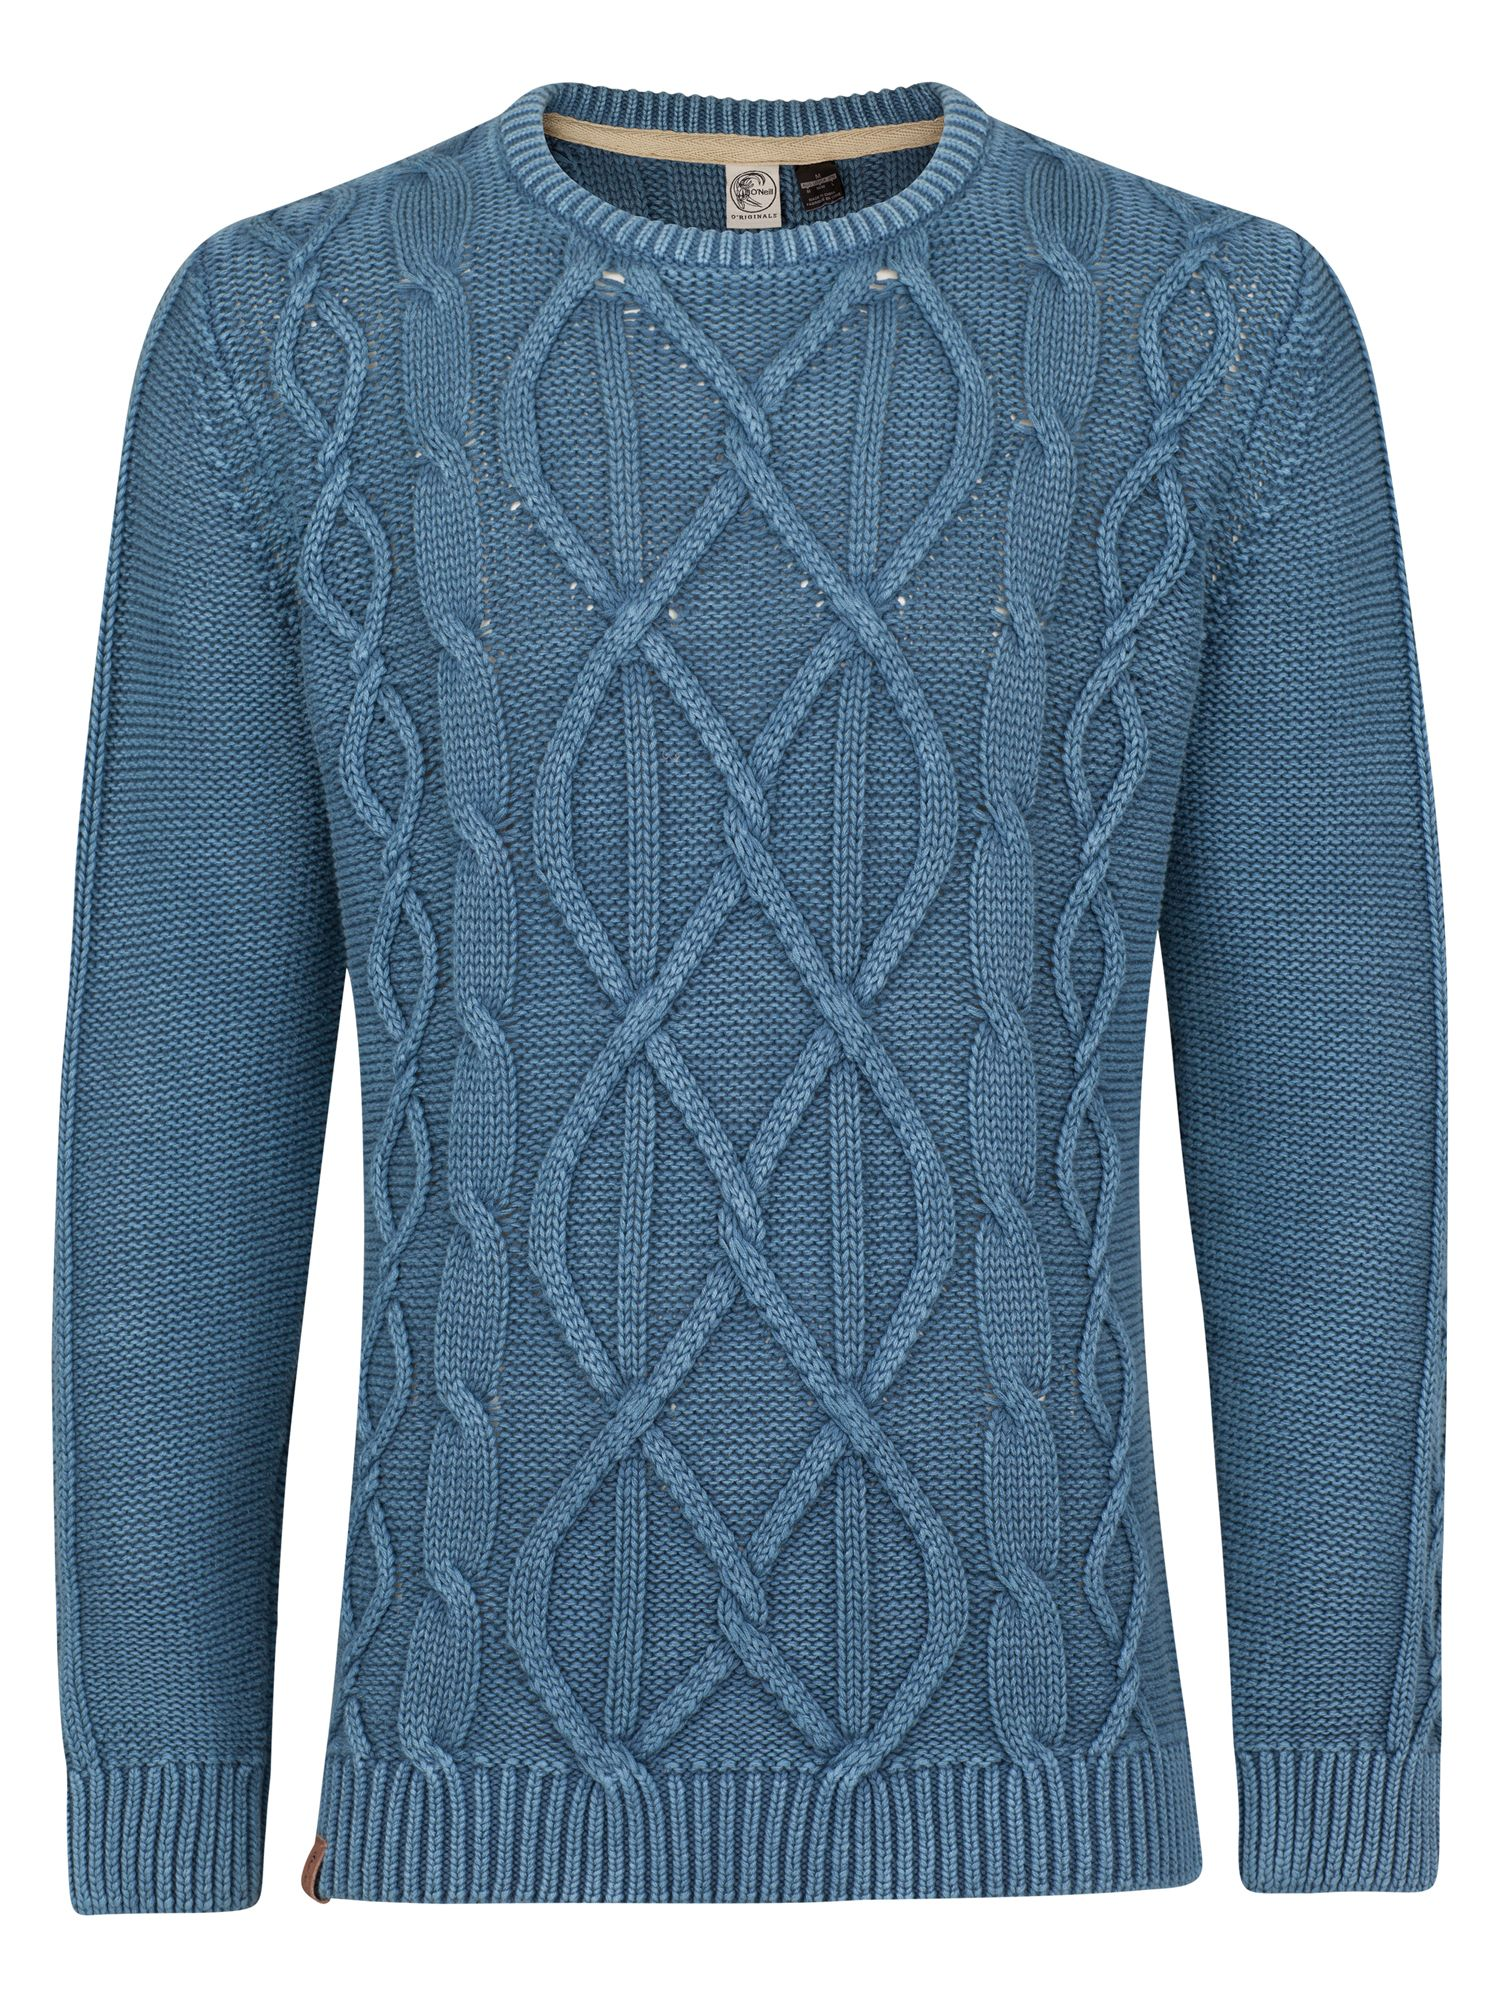 house of fraser s sweater cardigan with buttons